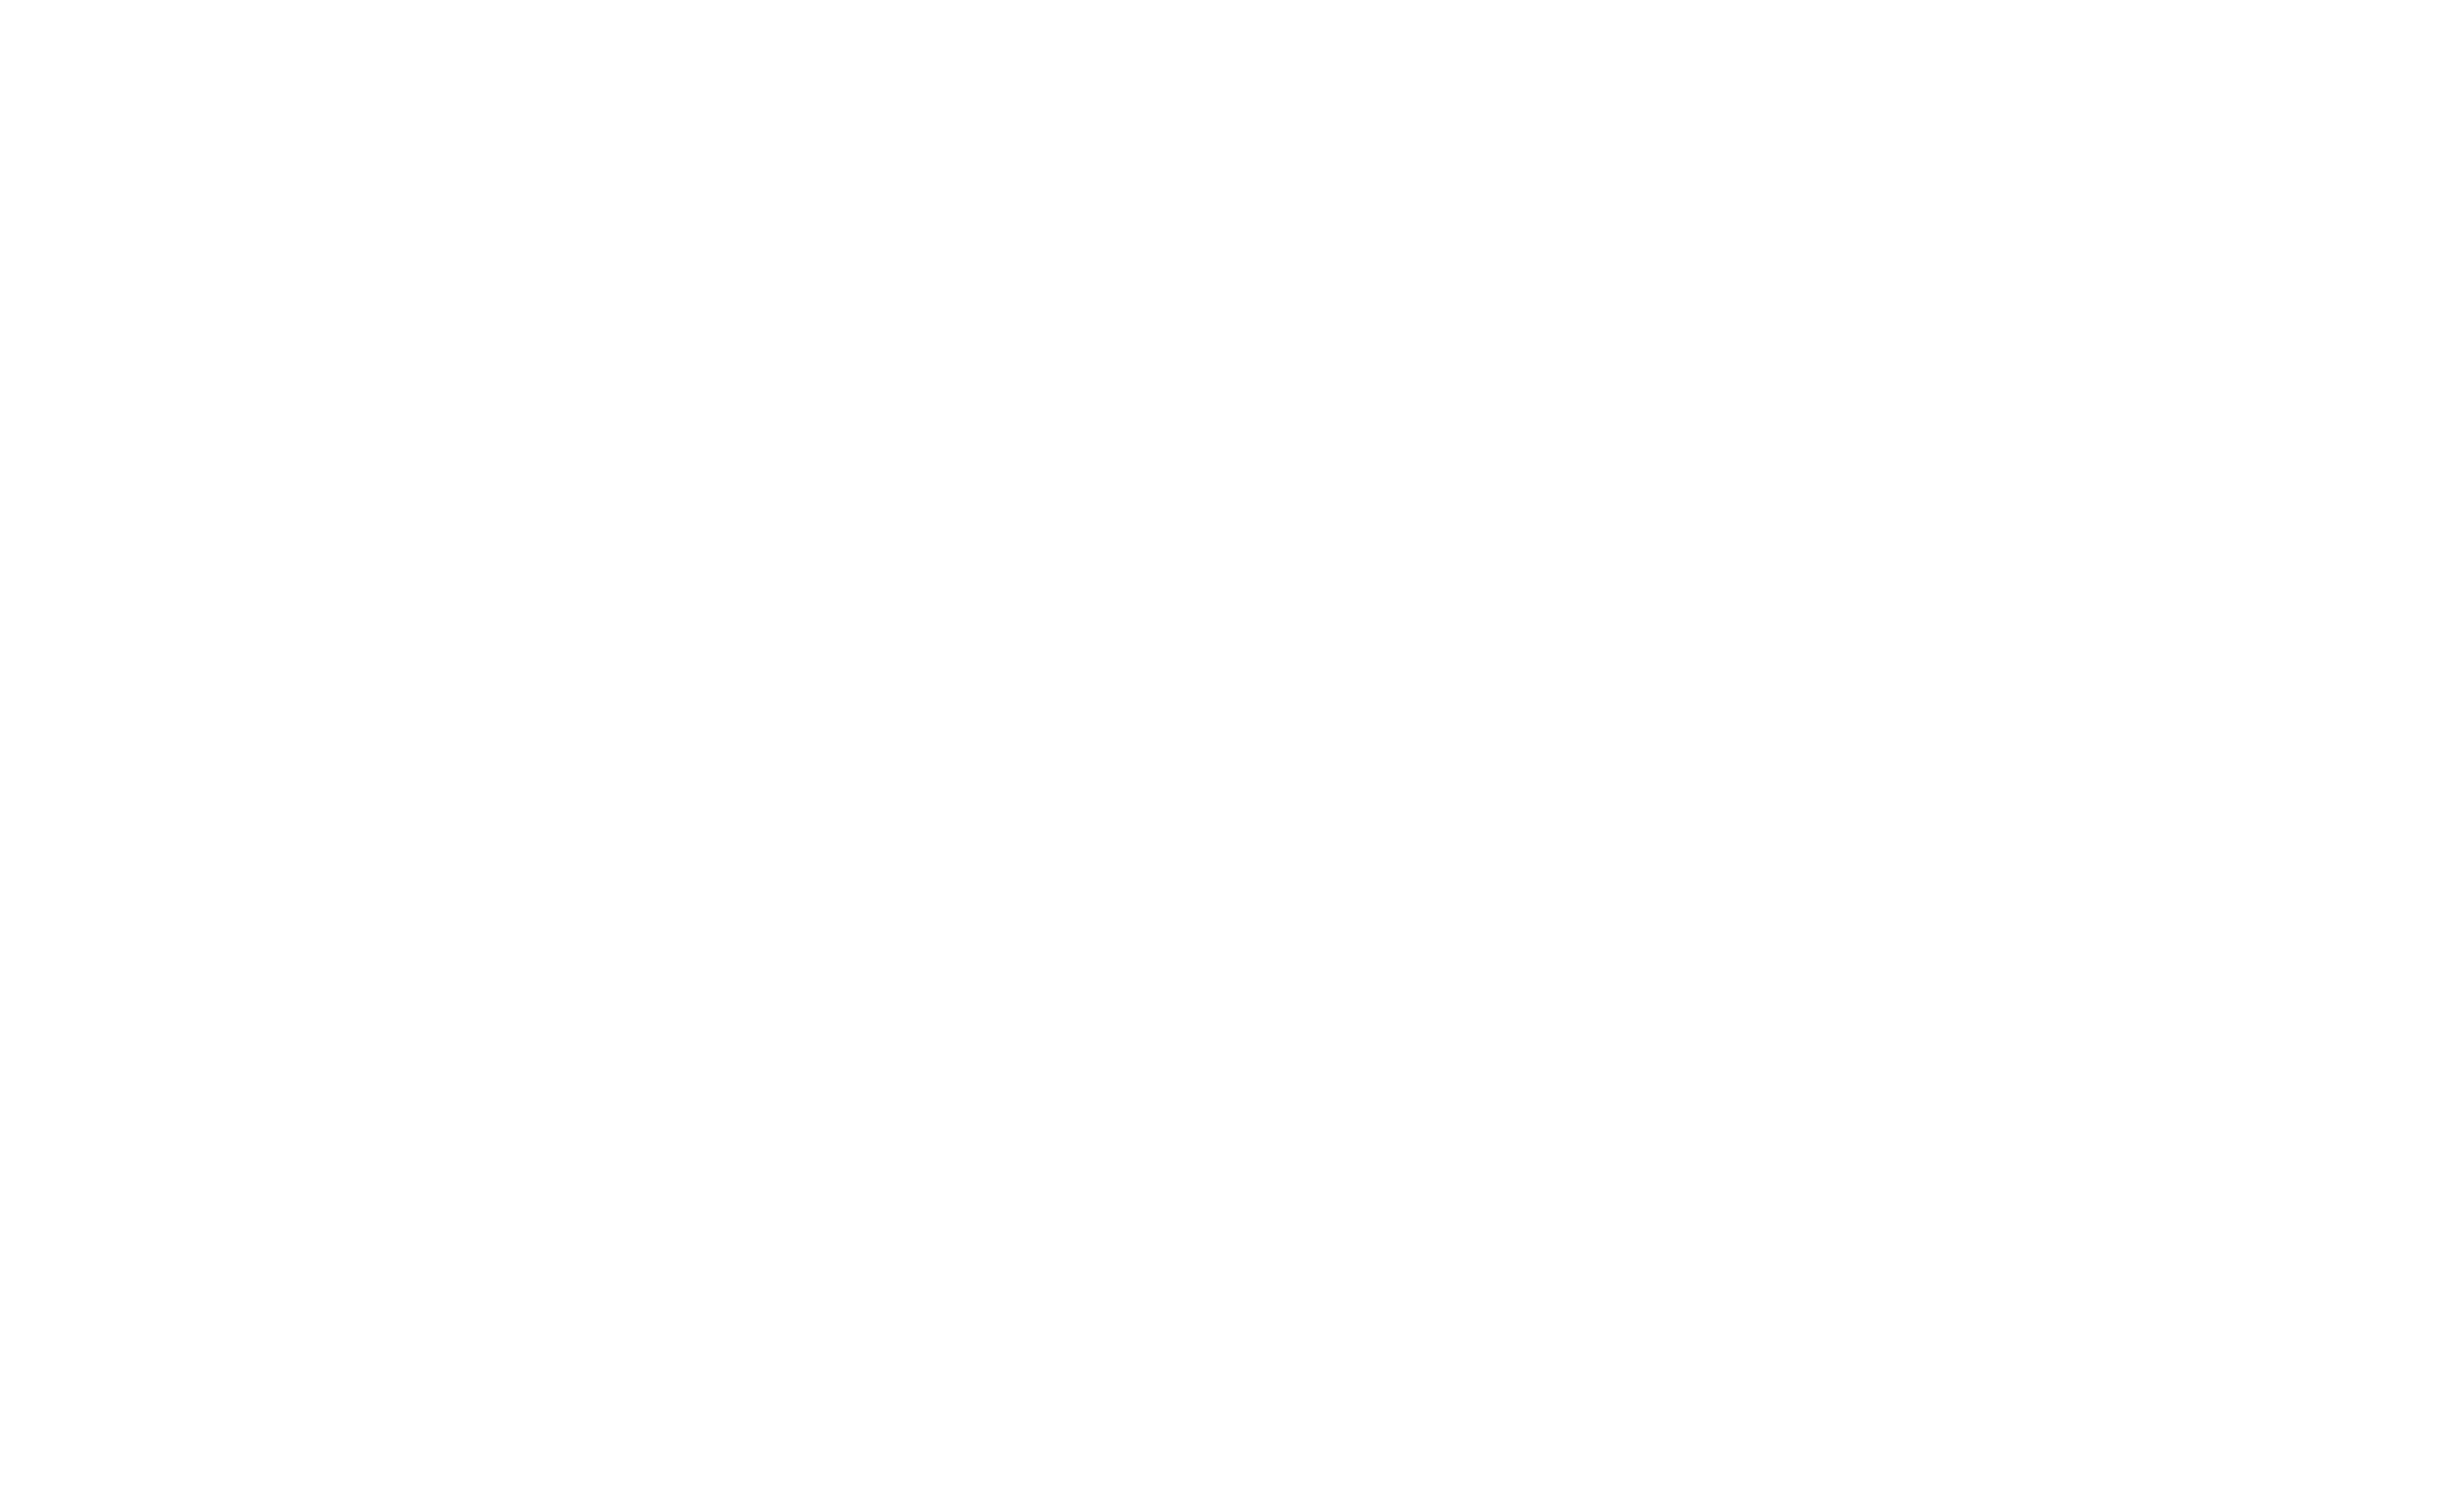 814 - state outline